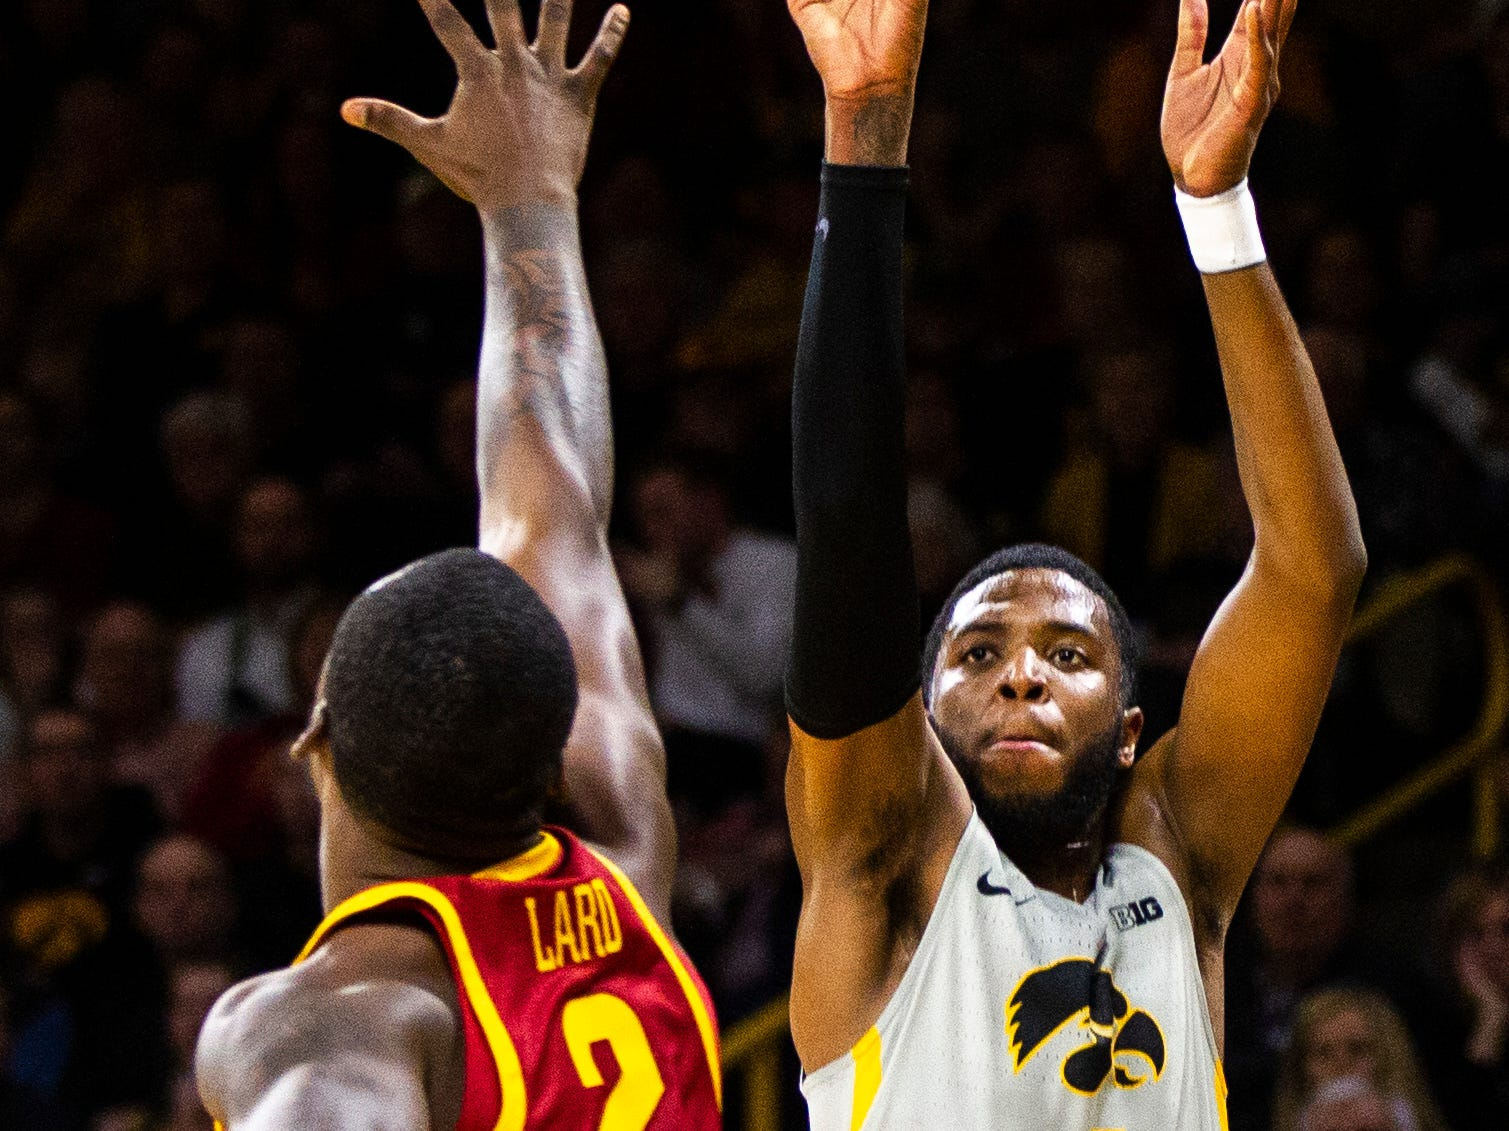 Iowa guard Isaiah Moss (4) shoots a 3-point basket over Iowa State forward Cameron Lard (2) during a NCAA Cy-Hawk series men's basketball game on Thursday, Dec. 6, 2018, at Carver-Hawkeye Arena in Iowa City.